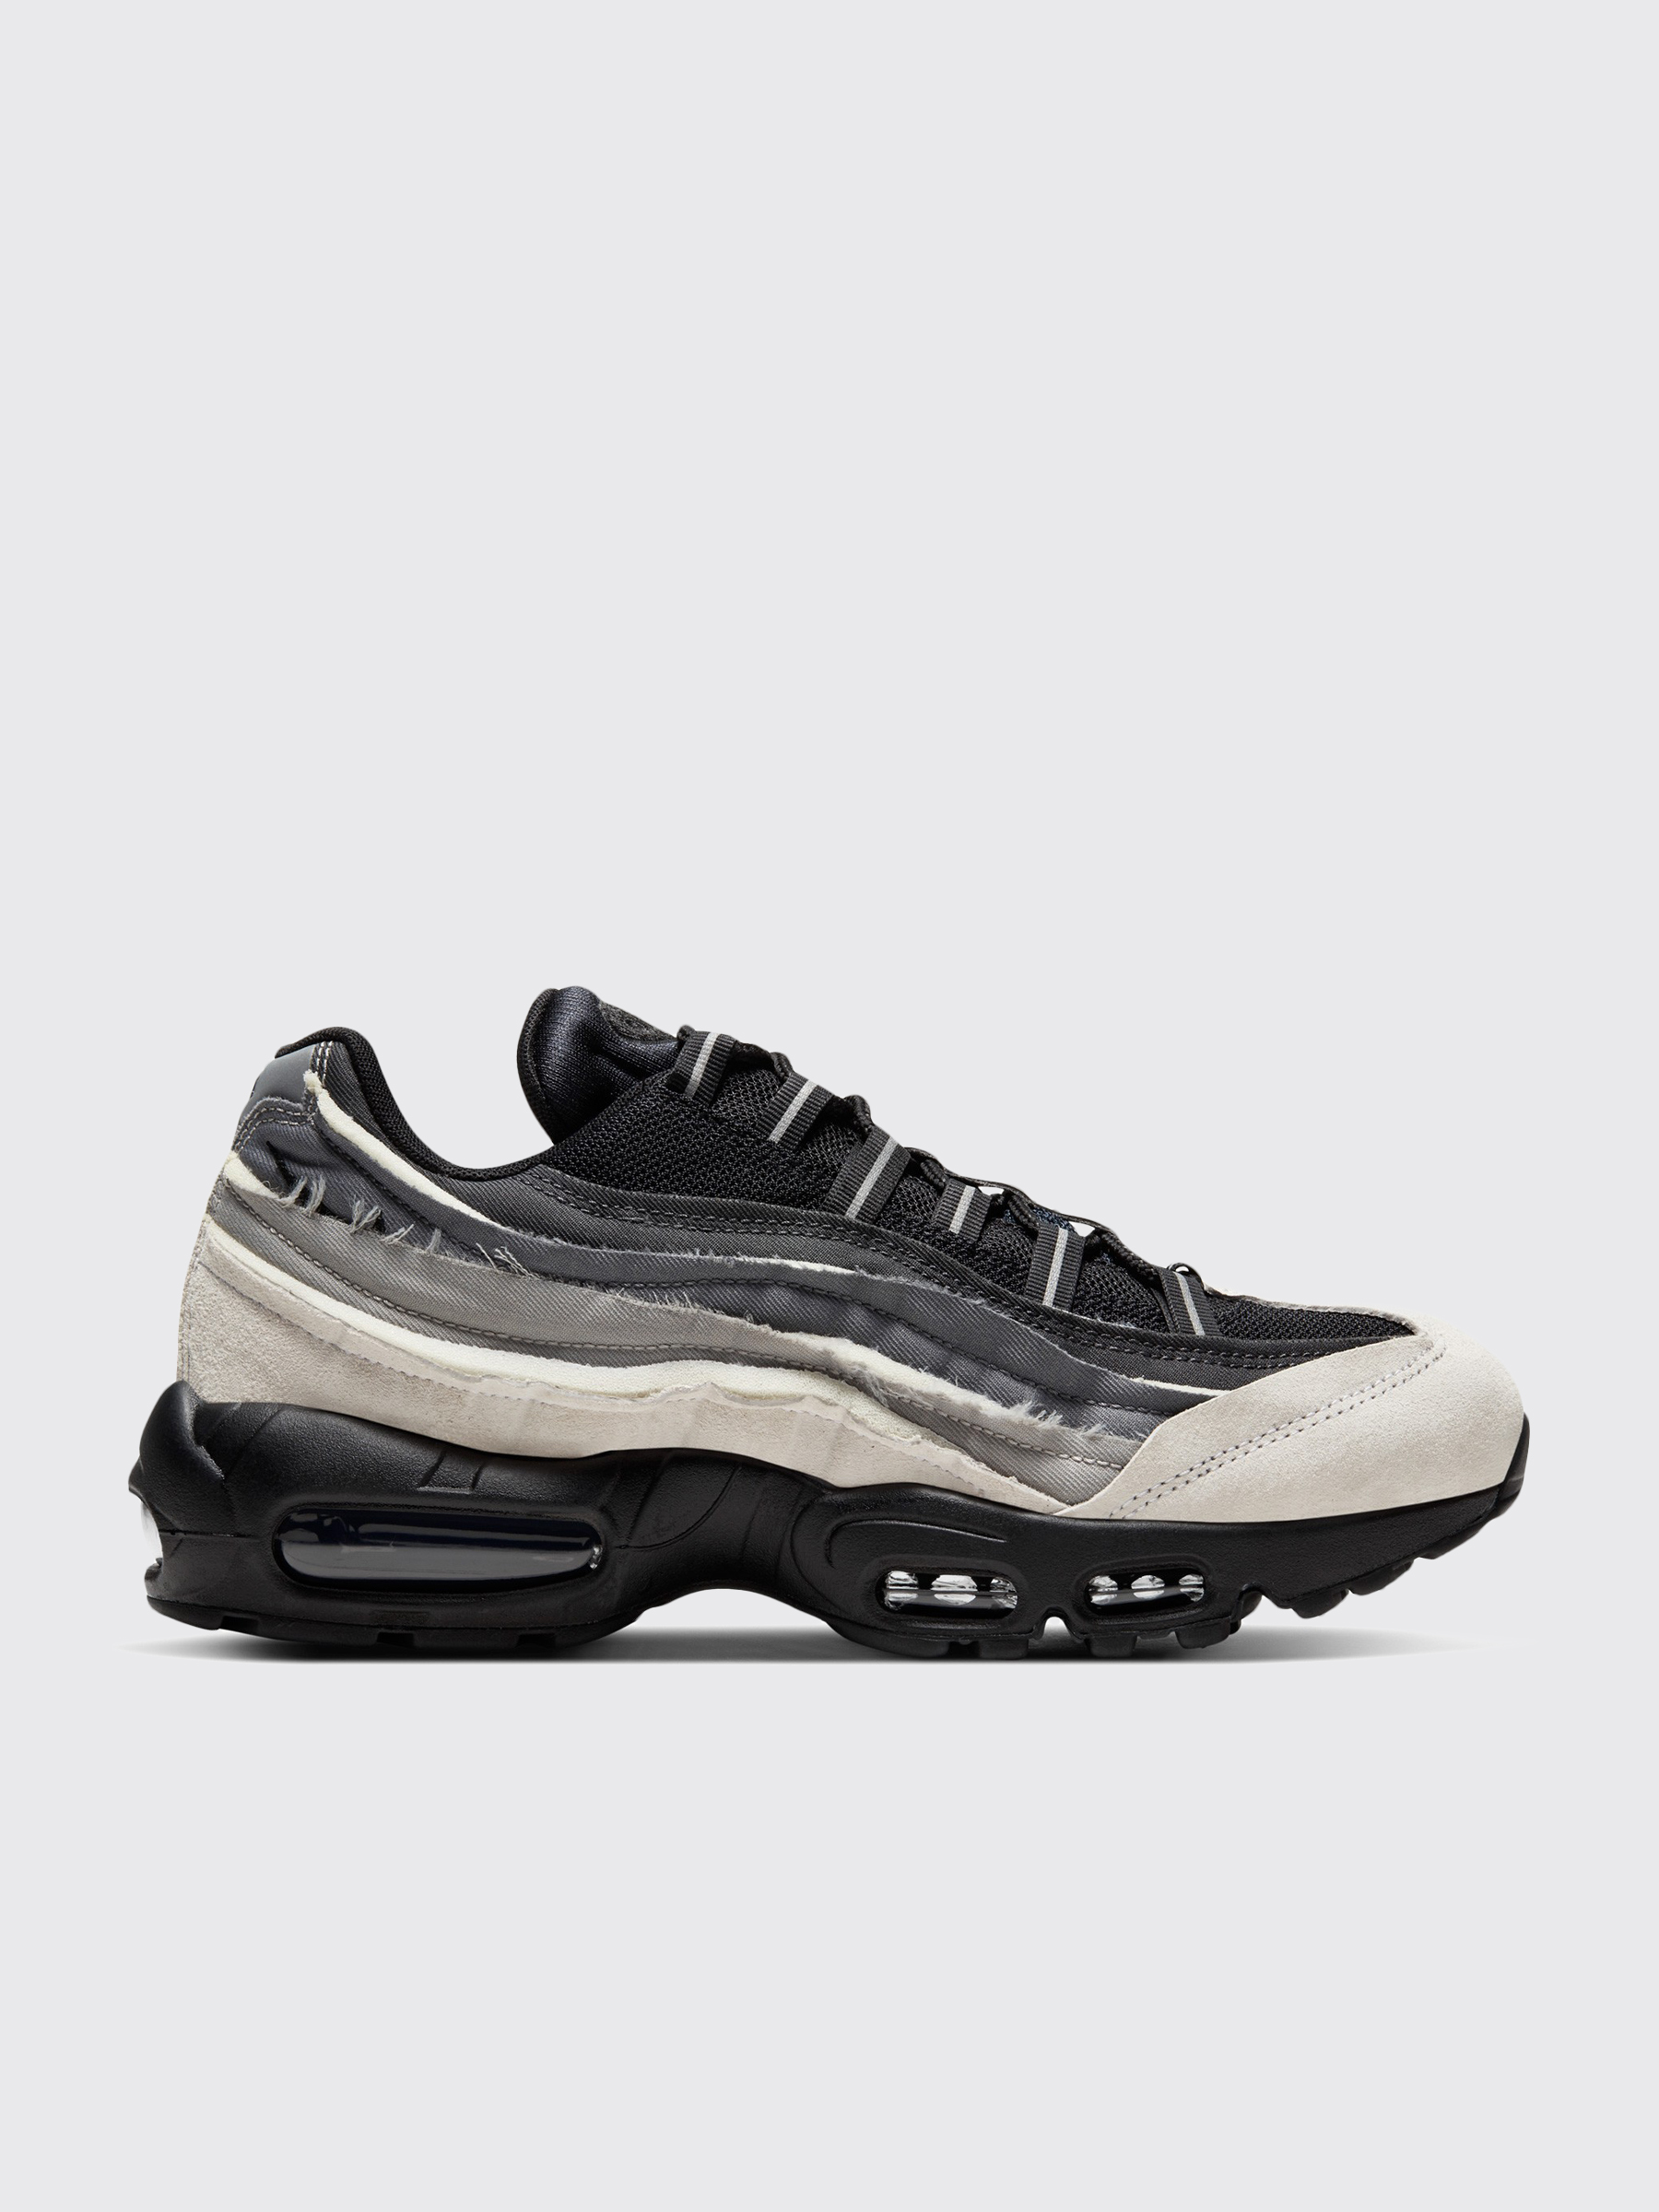 Nike x CDG Homme Plus Air Max 95 Grey